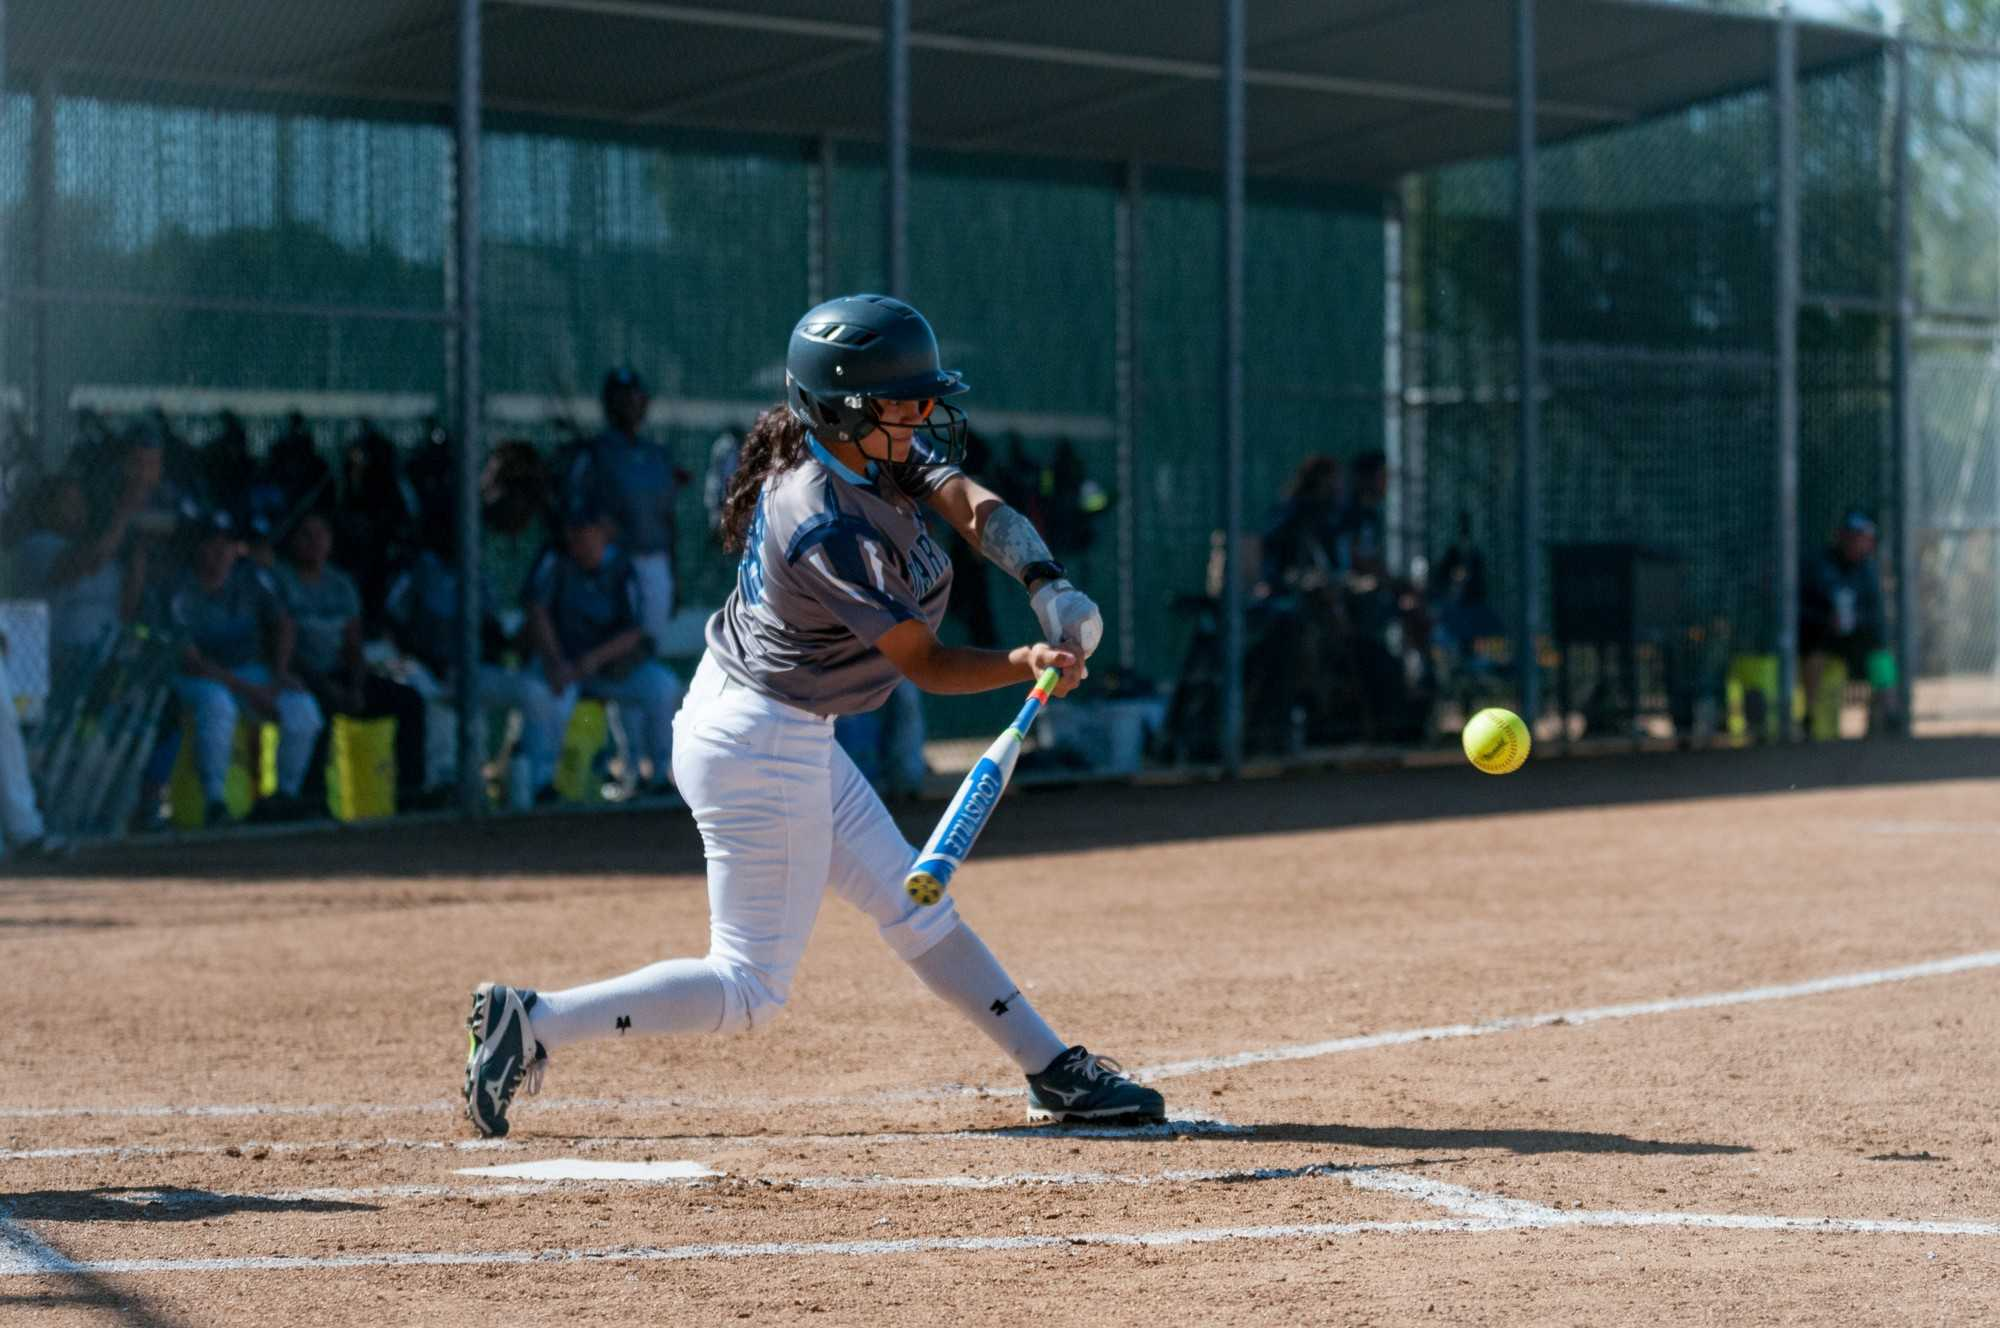 Freshman Karla Calderon (No. 16 Infield/Outfield) swings at a pitch during El Camino's win over L.A. Harbor College on Tuesday, March 28 at El Camino College. Photo credit: Osvaldo Deras